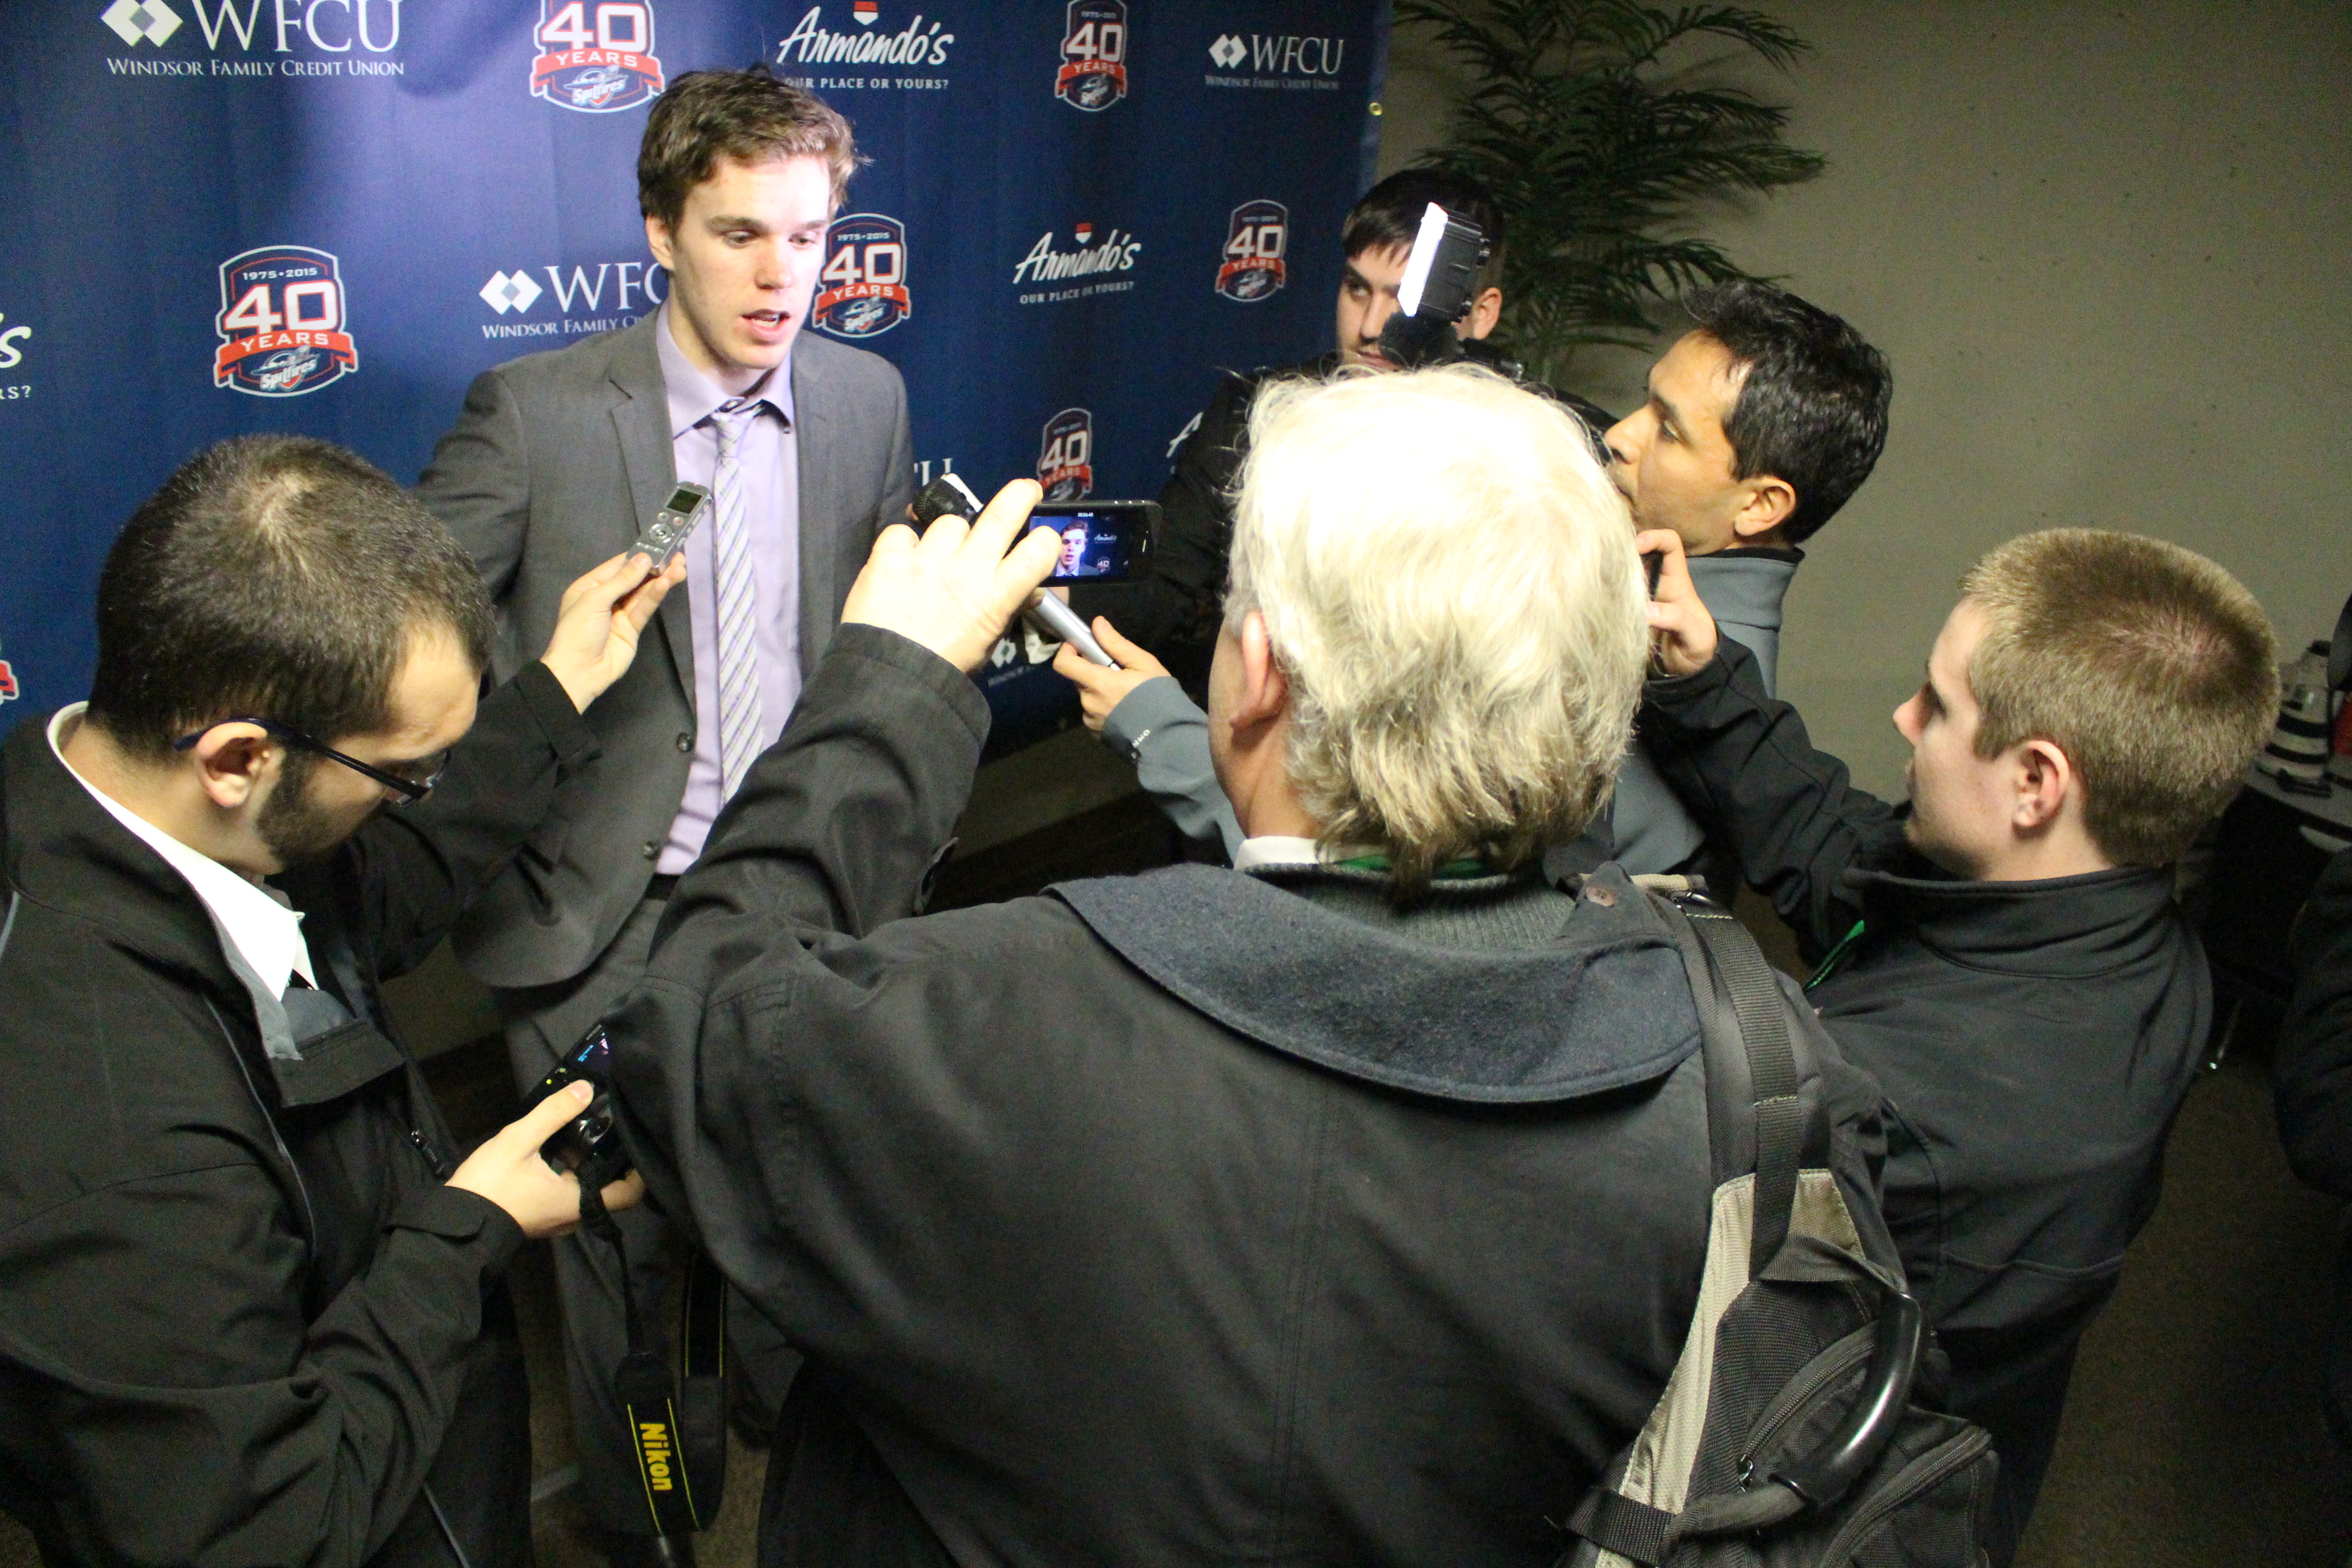 Erie Otter center Connor McDavid speaks with the media after beating the Windsor Spitfires on March 19, 2015. (Photo by Jason Viau)